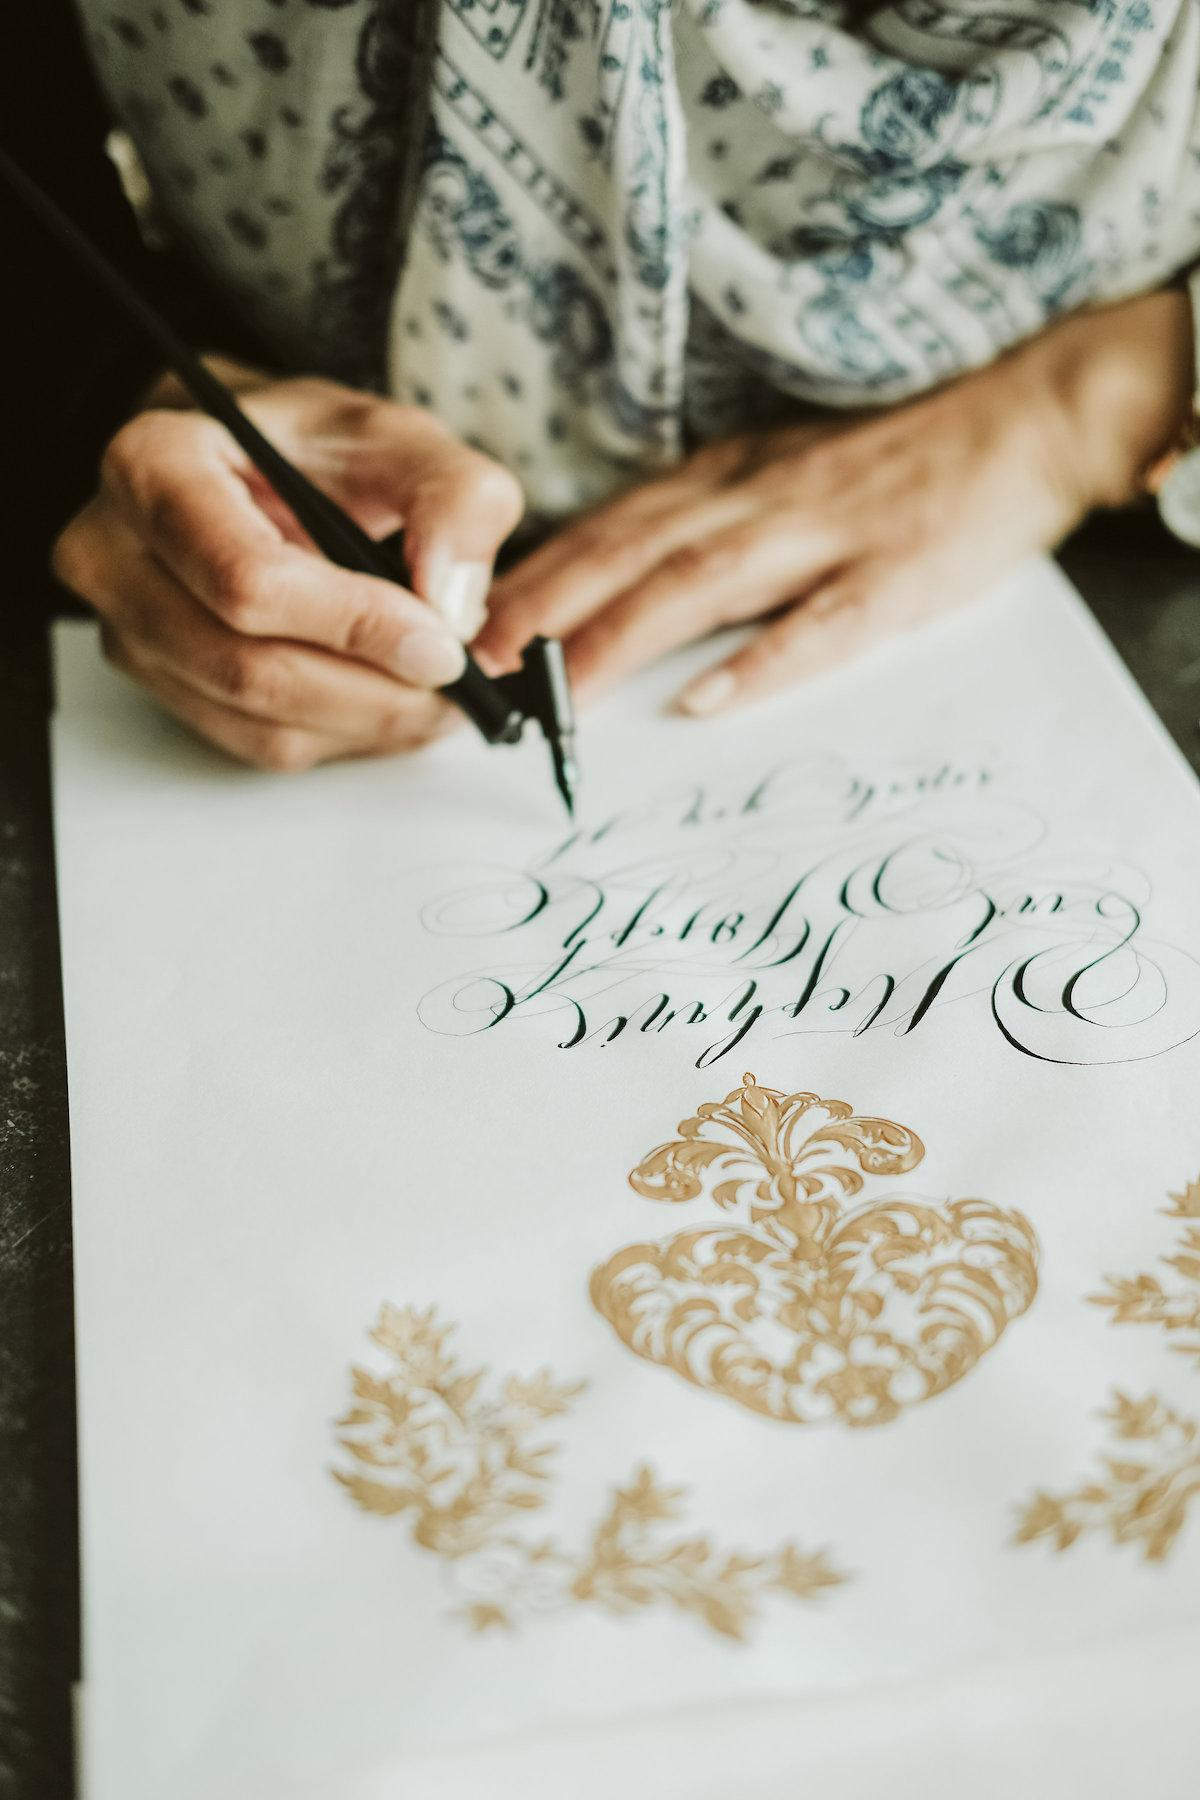 Unique & Luxury Handmade Wedding Invitations calligraphy for weddings